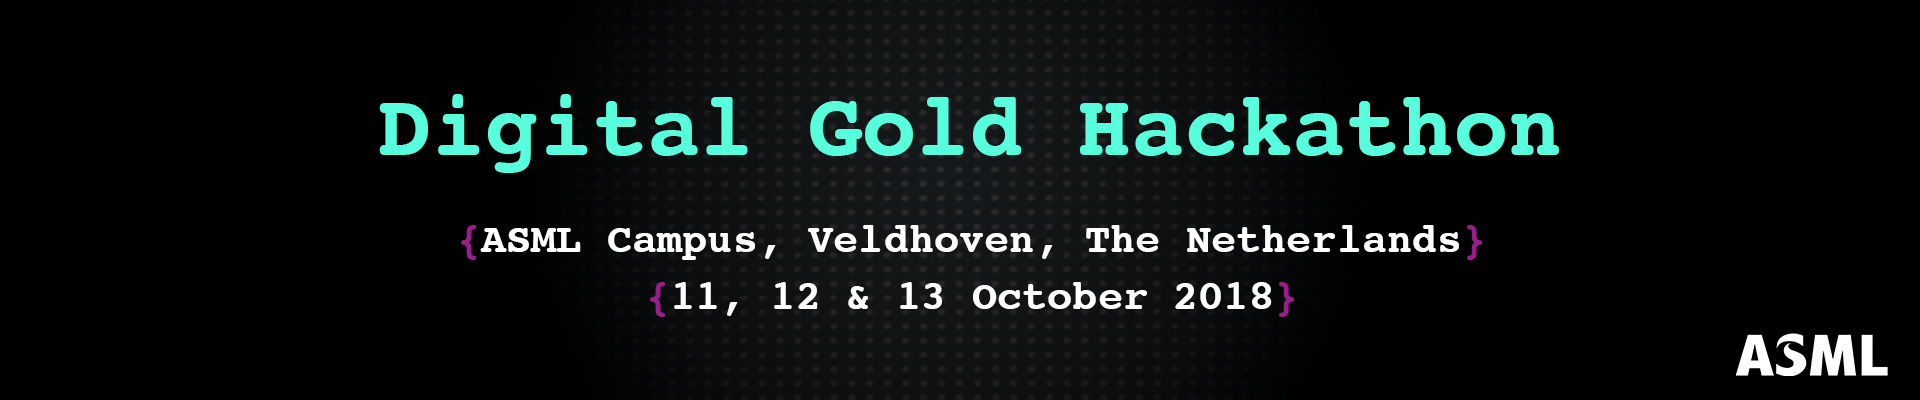 ASML Digital Gold Hackathon 2018